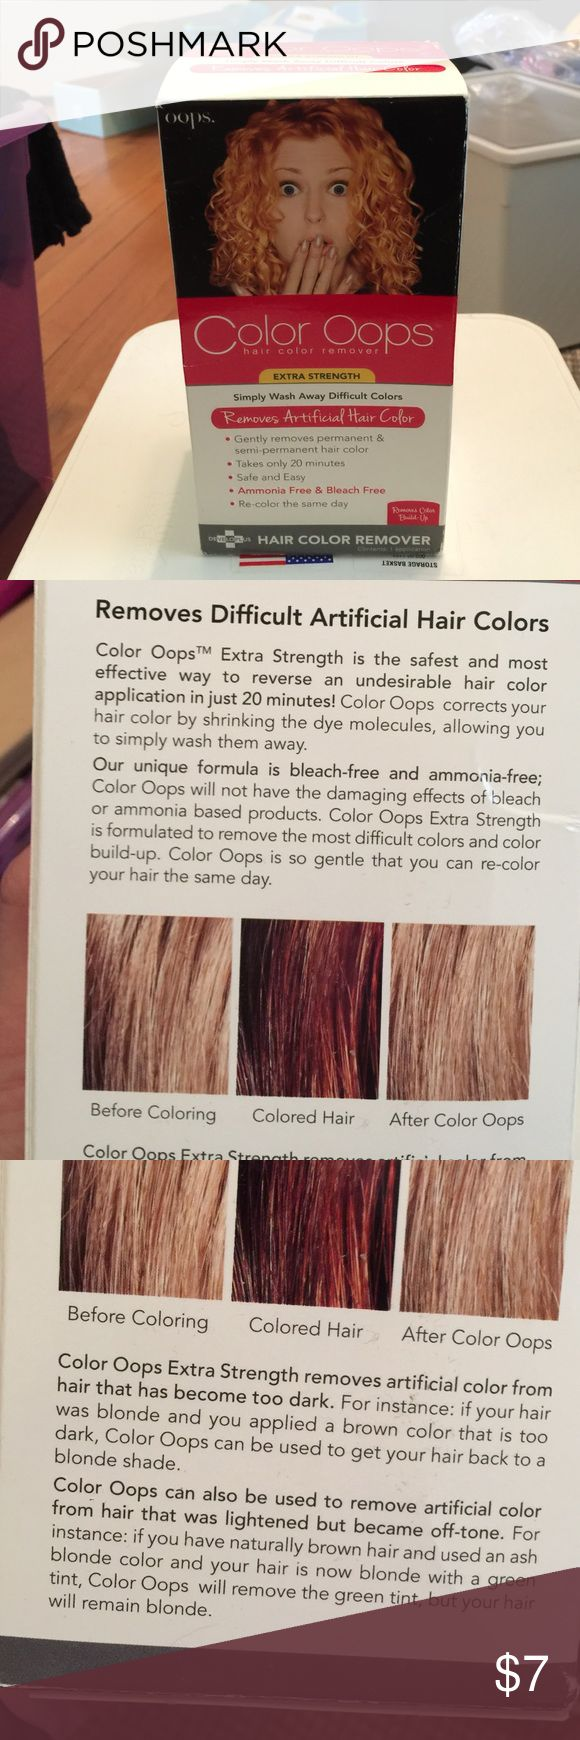 Color Oops Hair Color Remover As stated...I decided to hire someone to fix my hair instead! Box never opened. Makeup